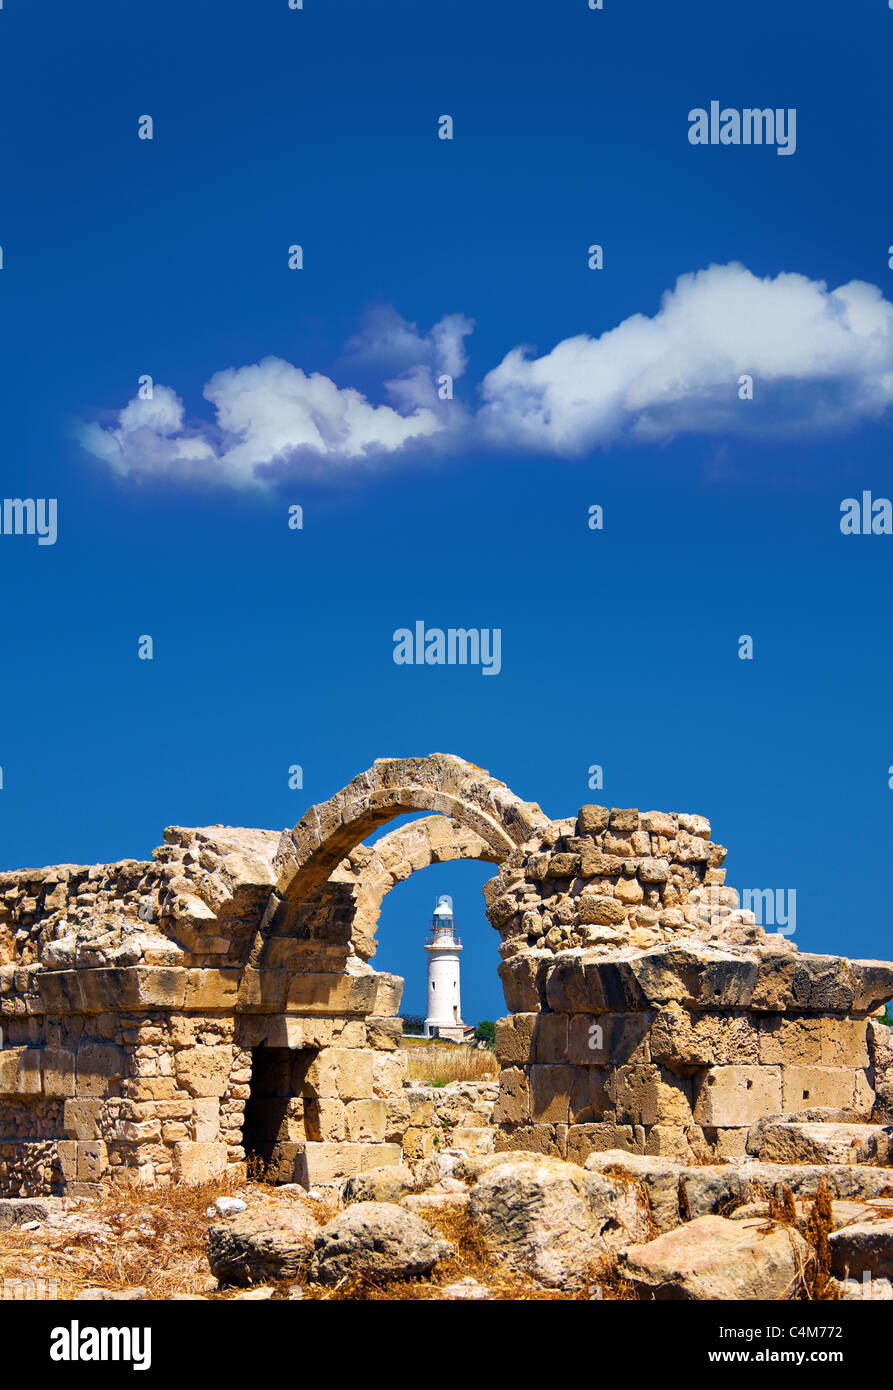 Byzantine castle ruins at Sarantra Kolones,Paphos lighthouse,Archaeological Park,Pafos,Paphos,Cyprus - Stock Image